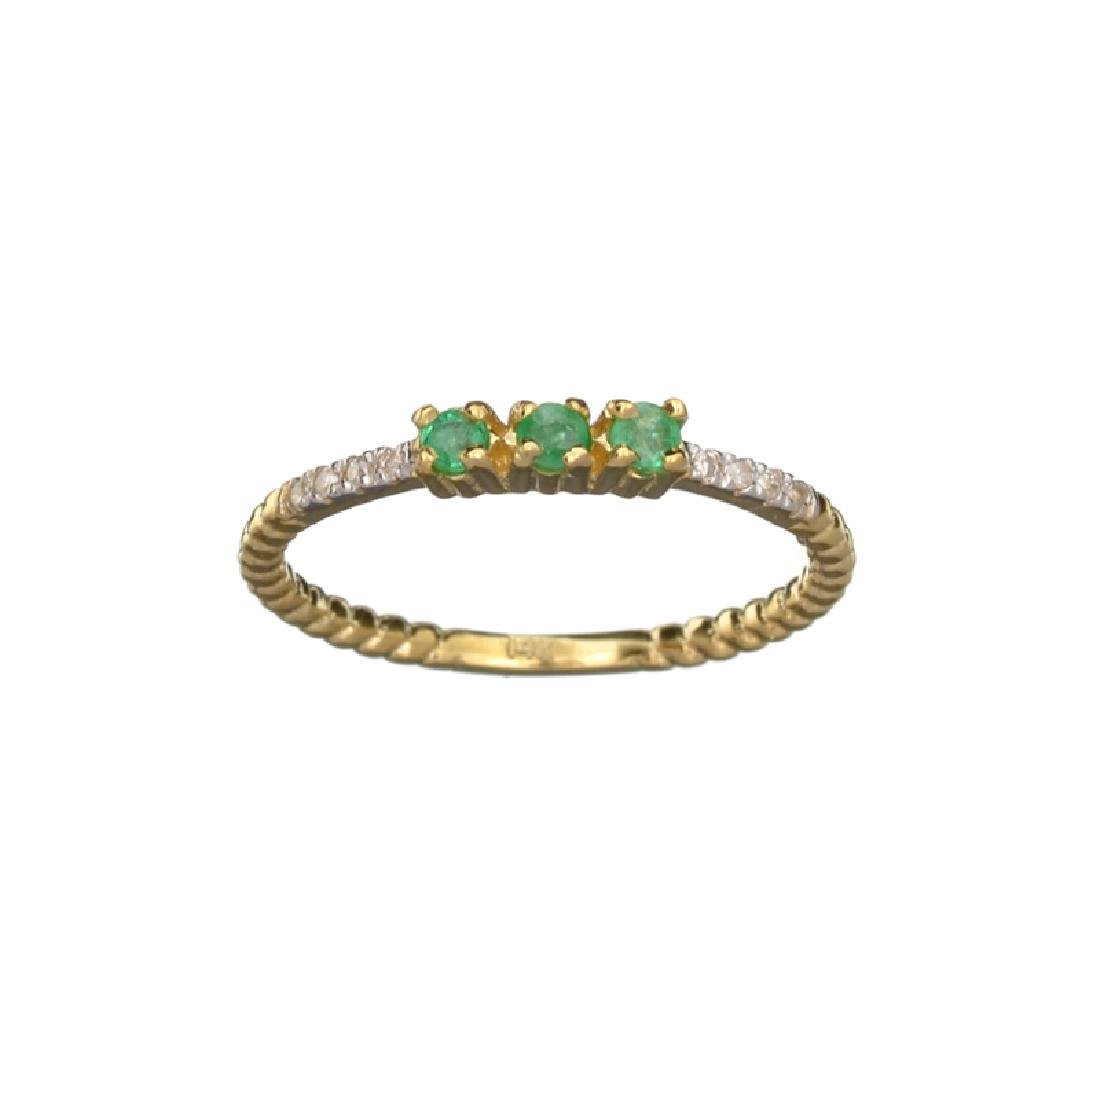 APP: 0.6k Fine Jewelry 14KT Gold, 0.18CT Green Emerald